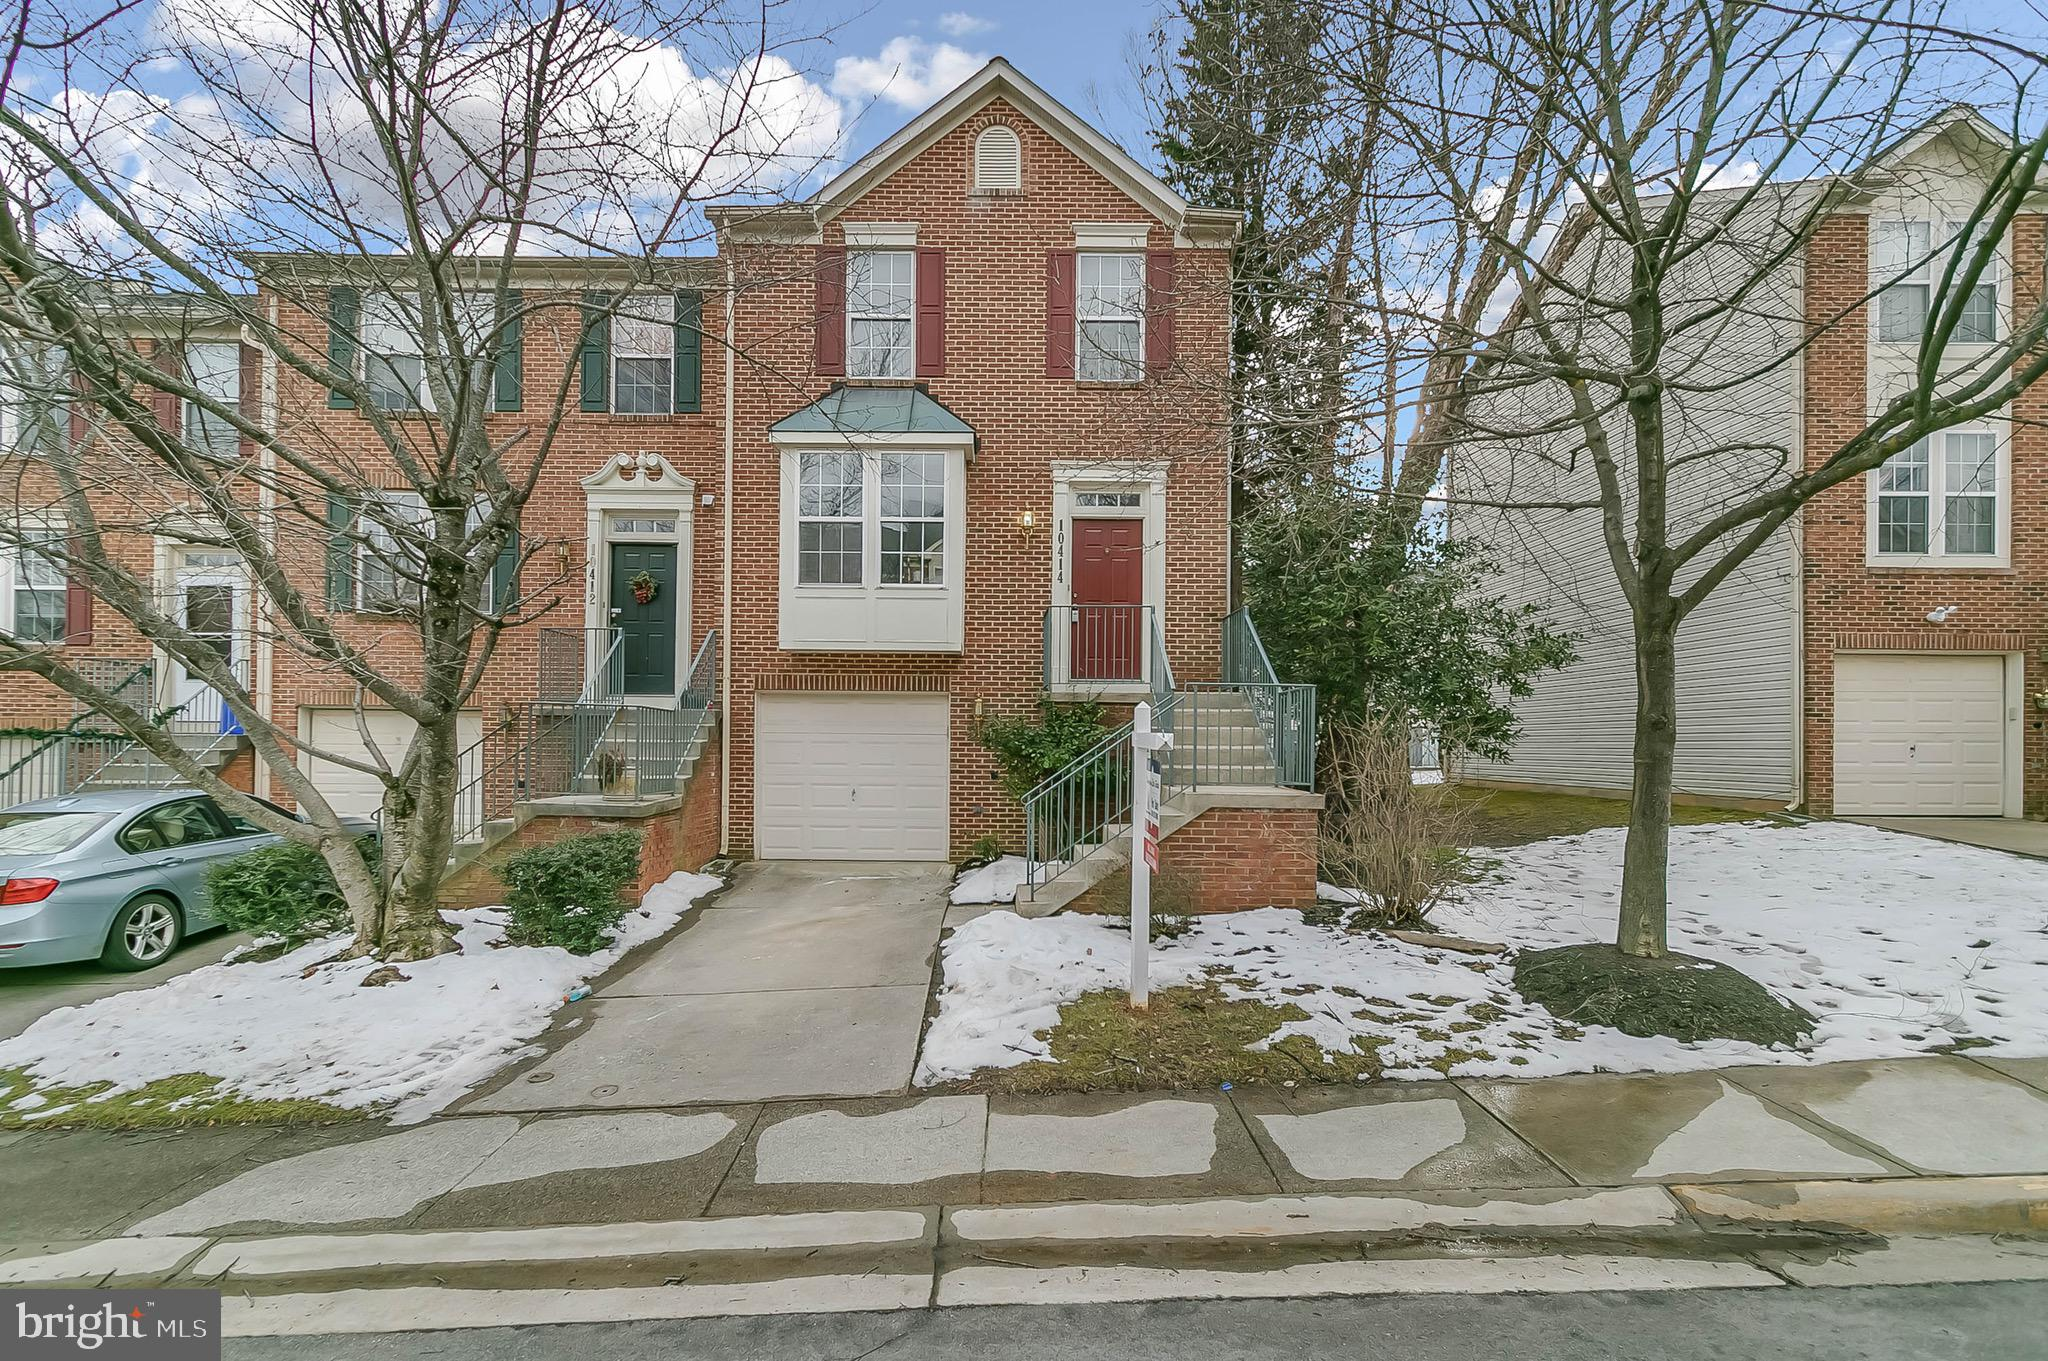 ALL OFFERS ARE DUE BY SATURDAY NOON, FEB 13.  Specious end unit town house in sought-after Potomac G